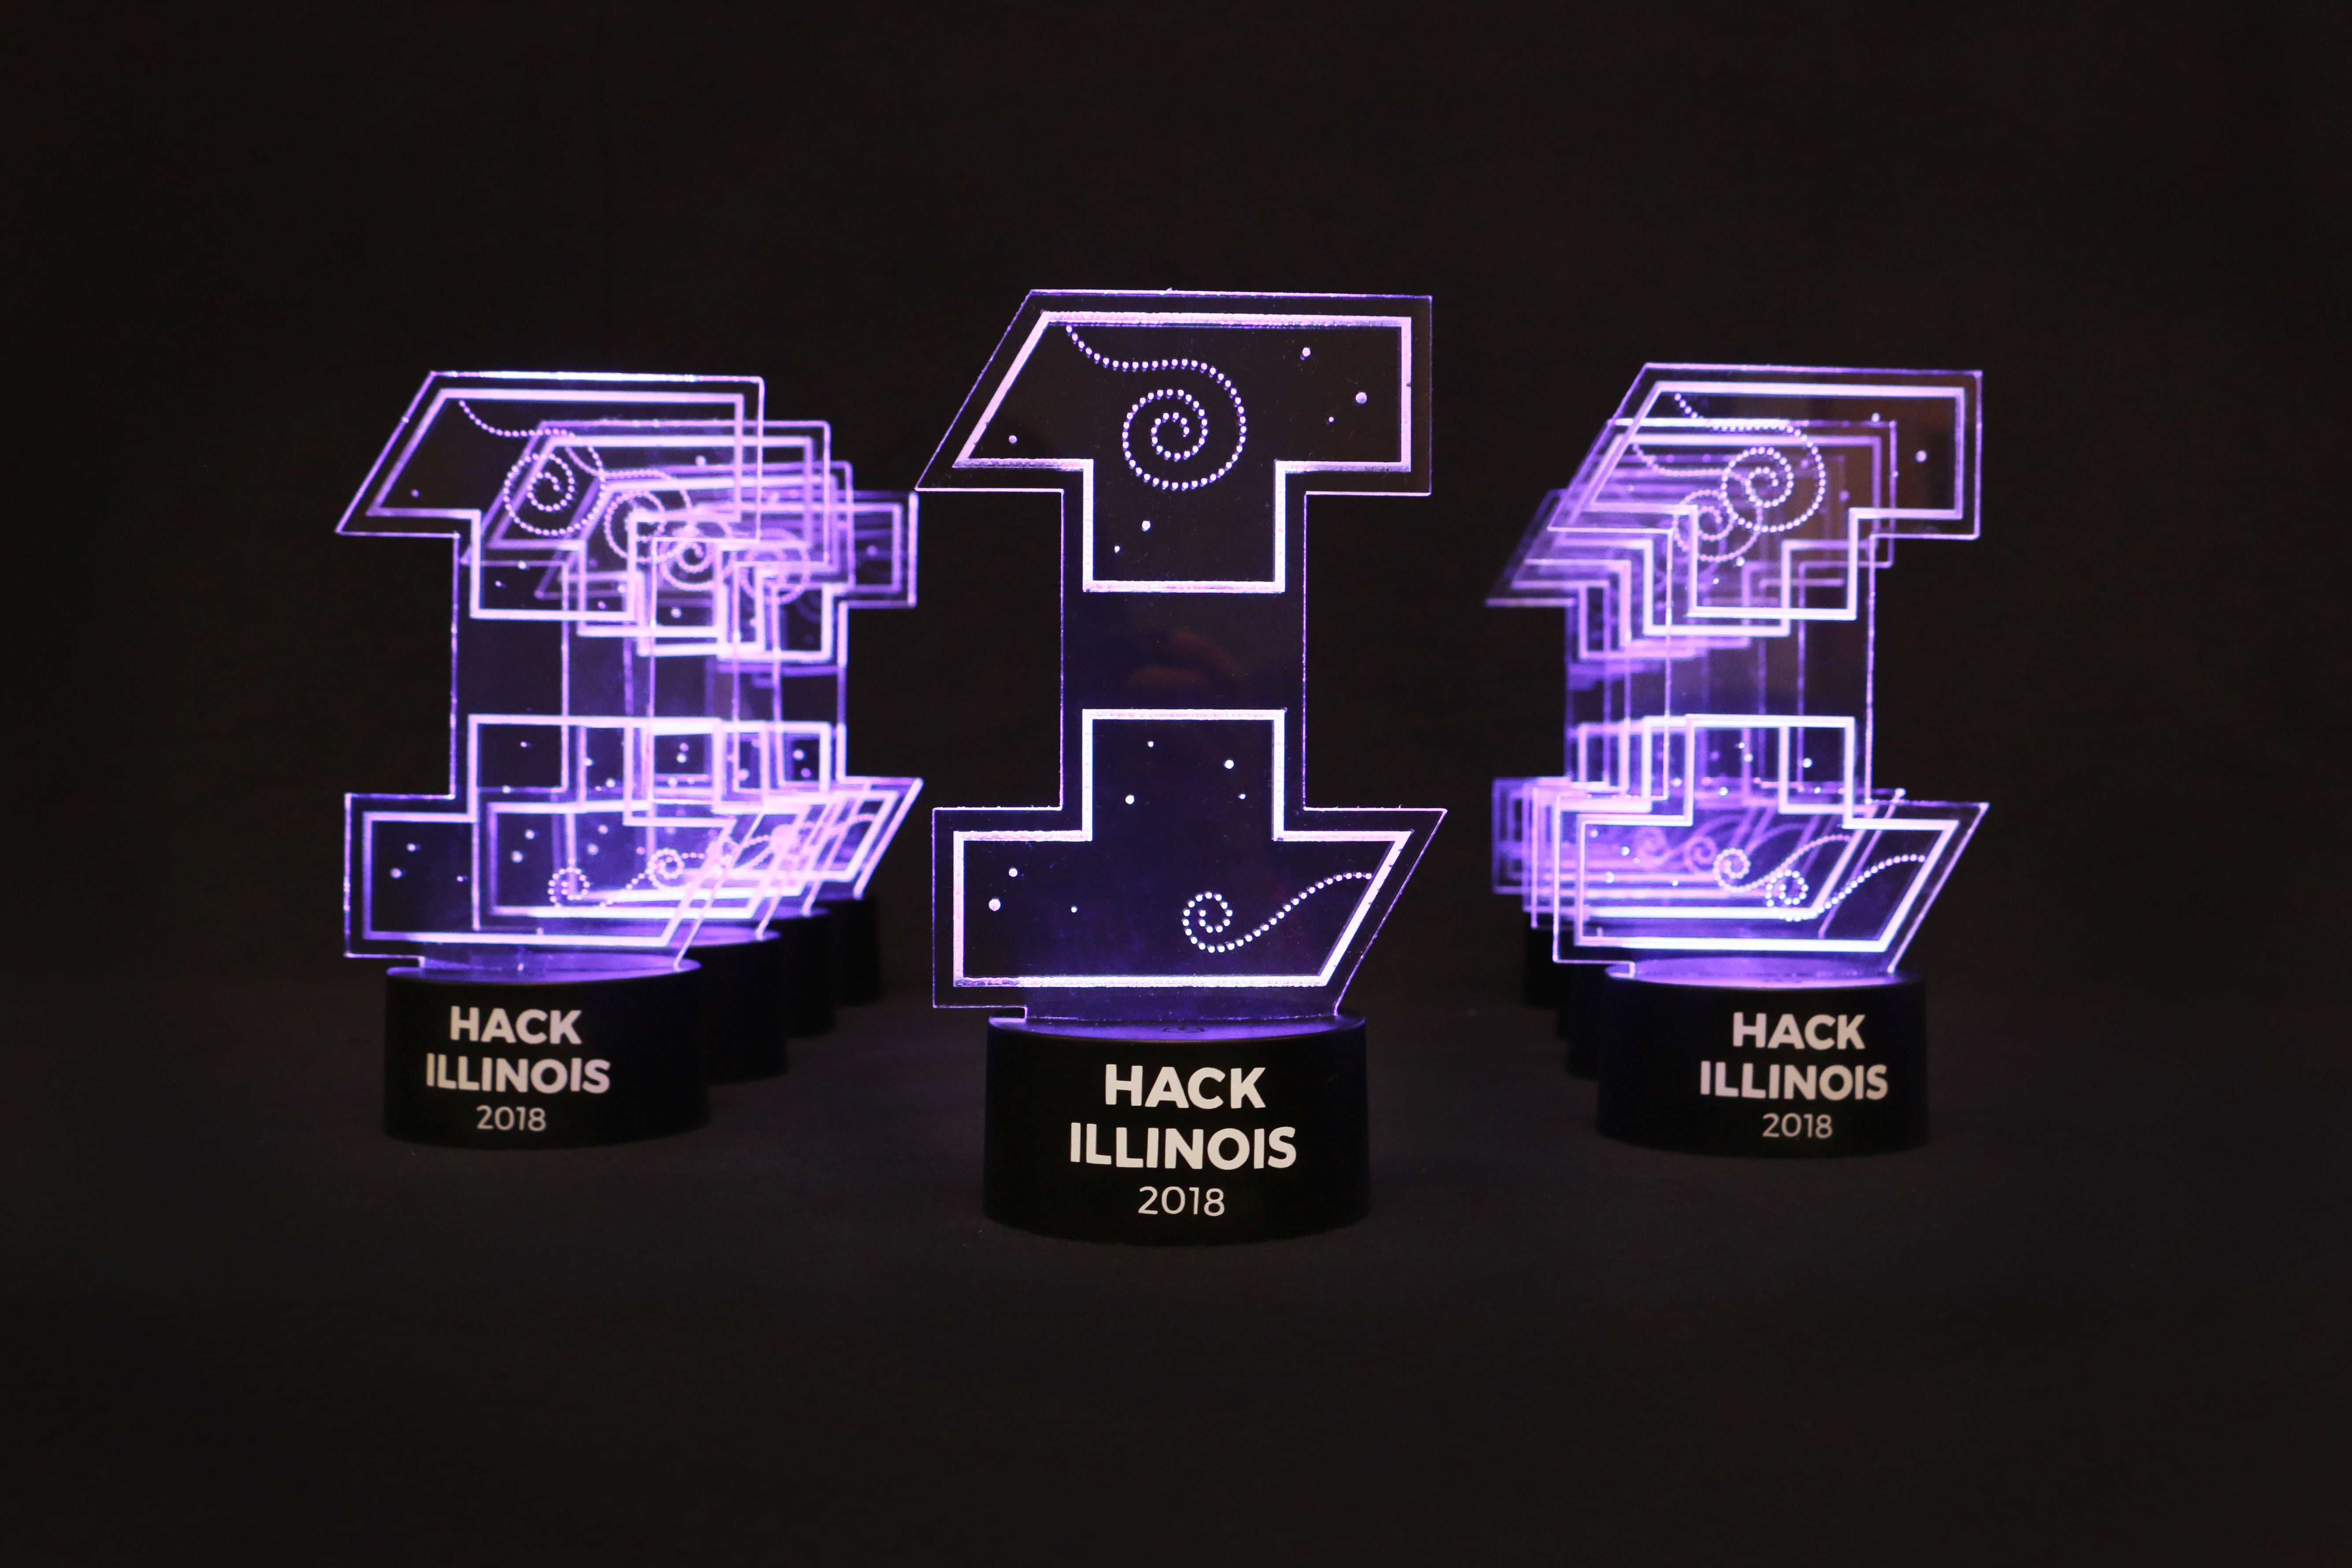 The trophies given to the HackIllinois 2018 winners.